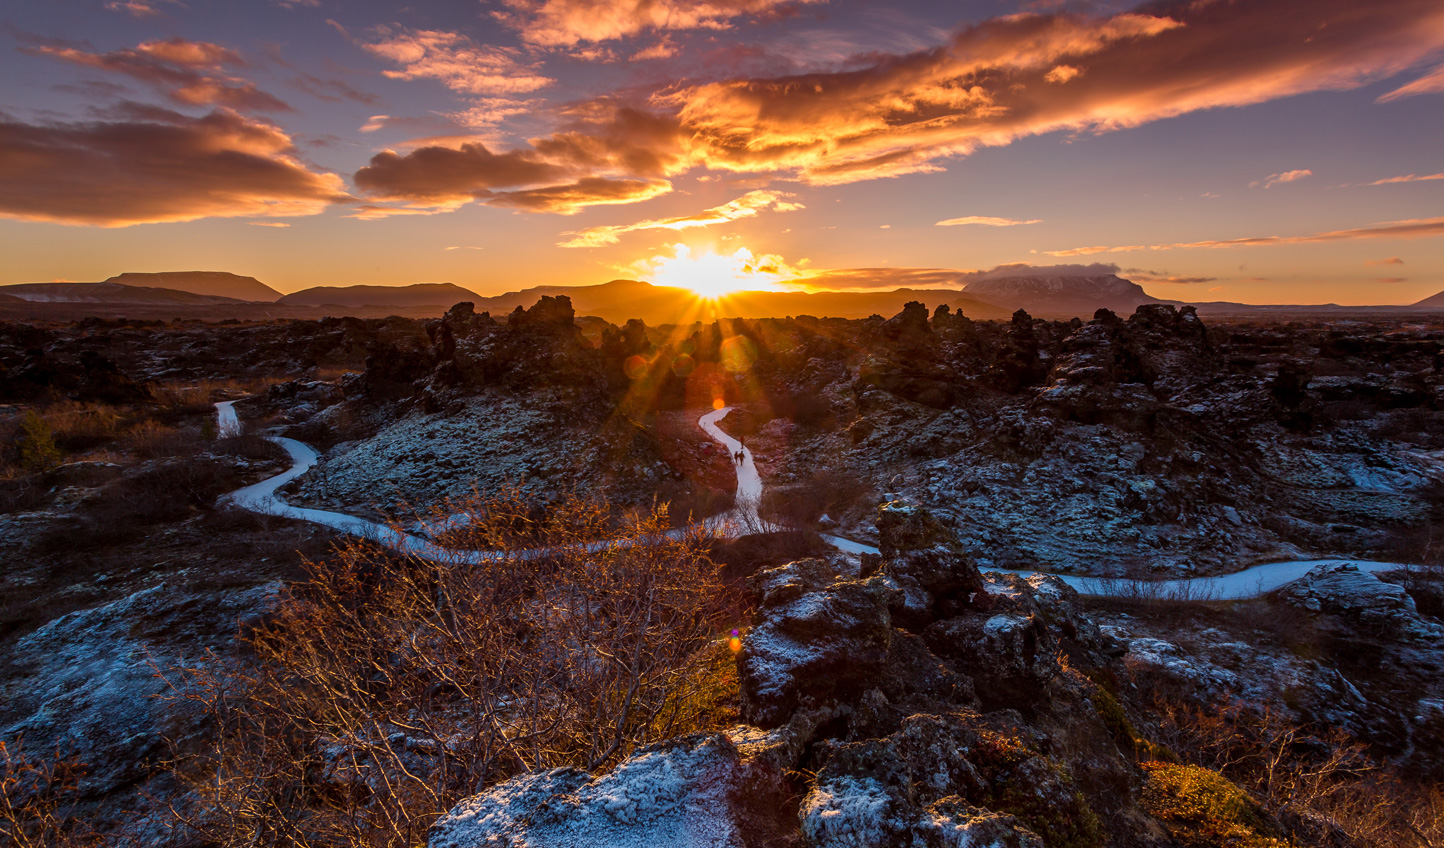 Strolling across the Dimmuborgir lava fields, you'll feel as if you're on a whole other planet